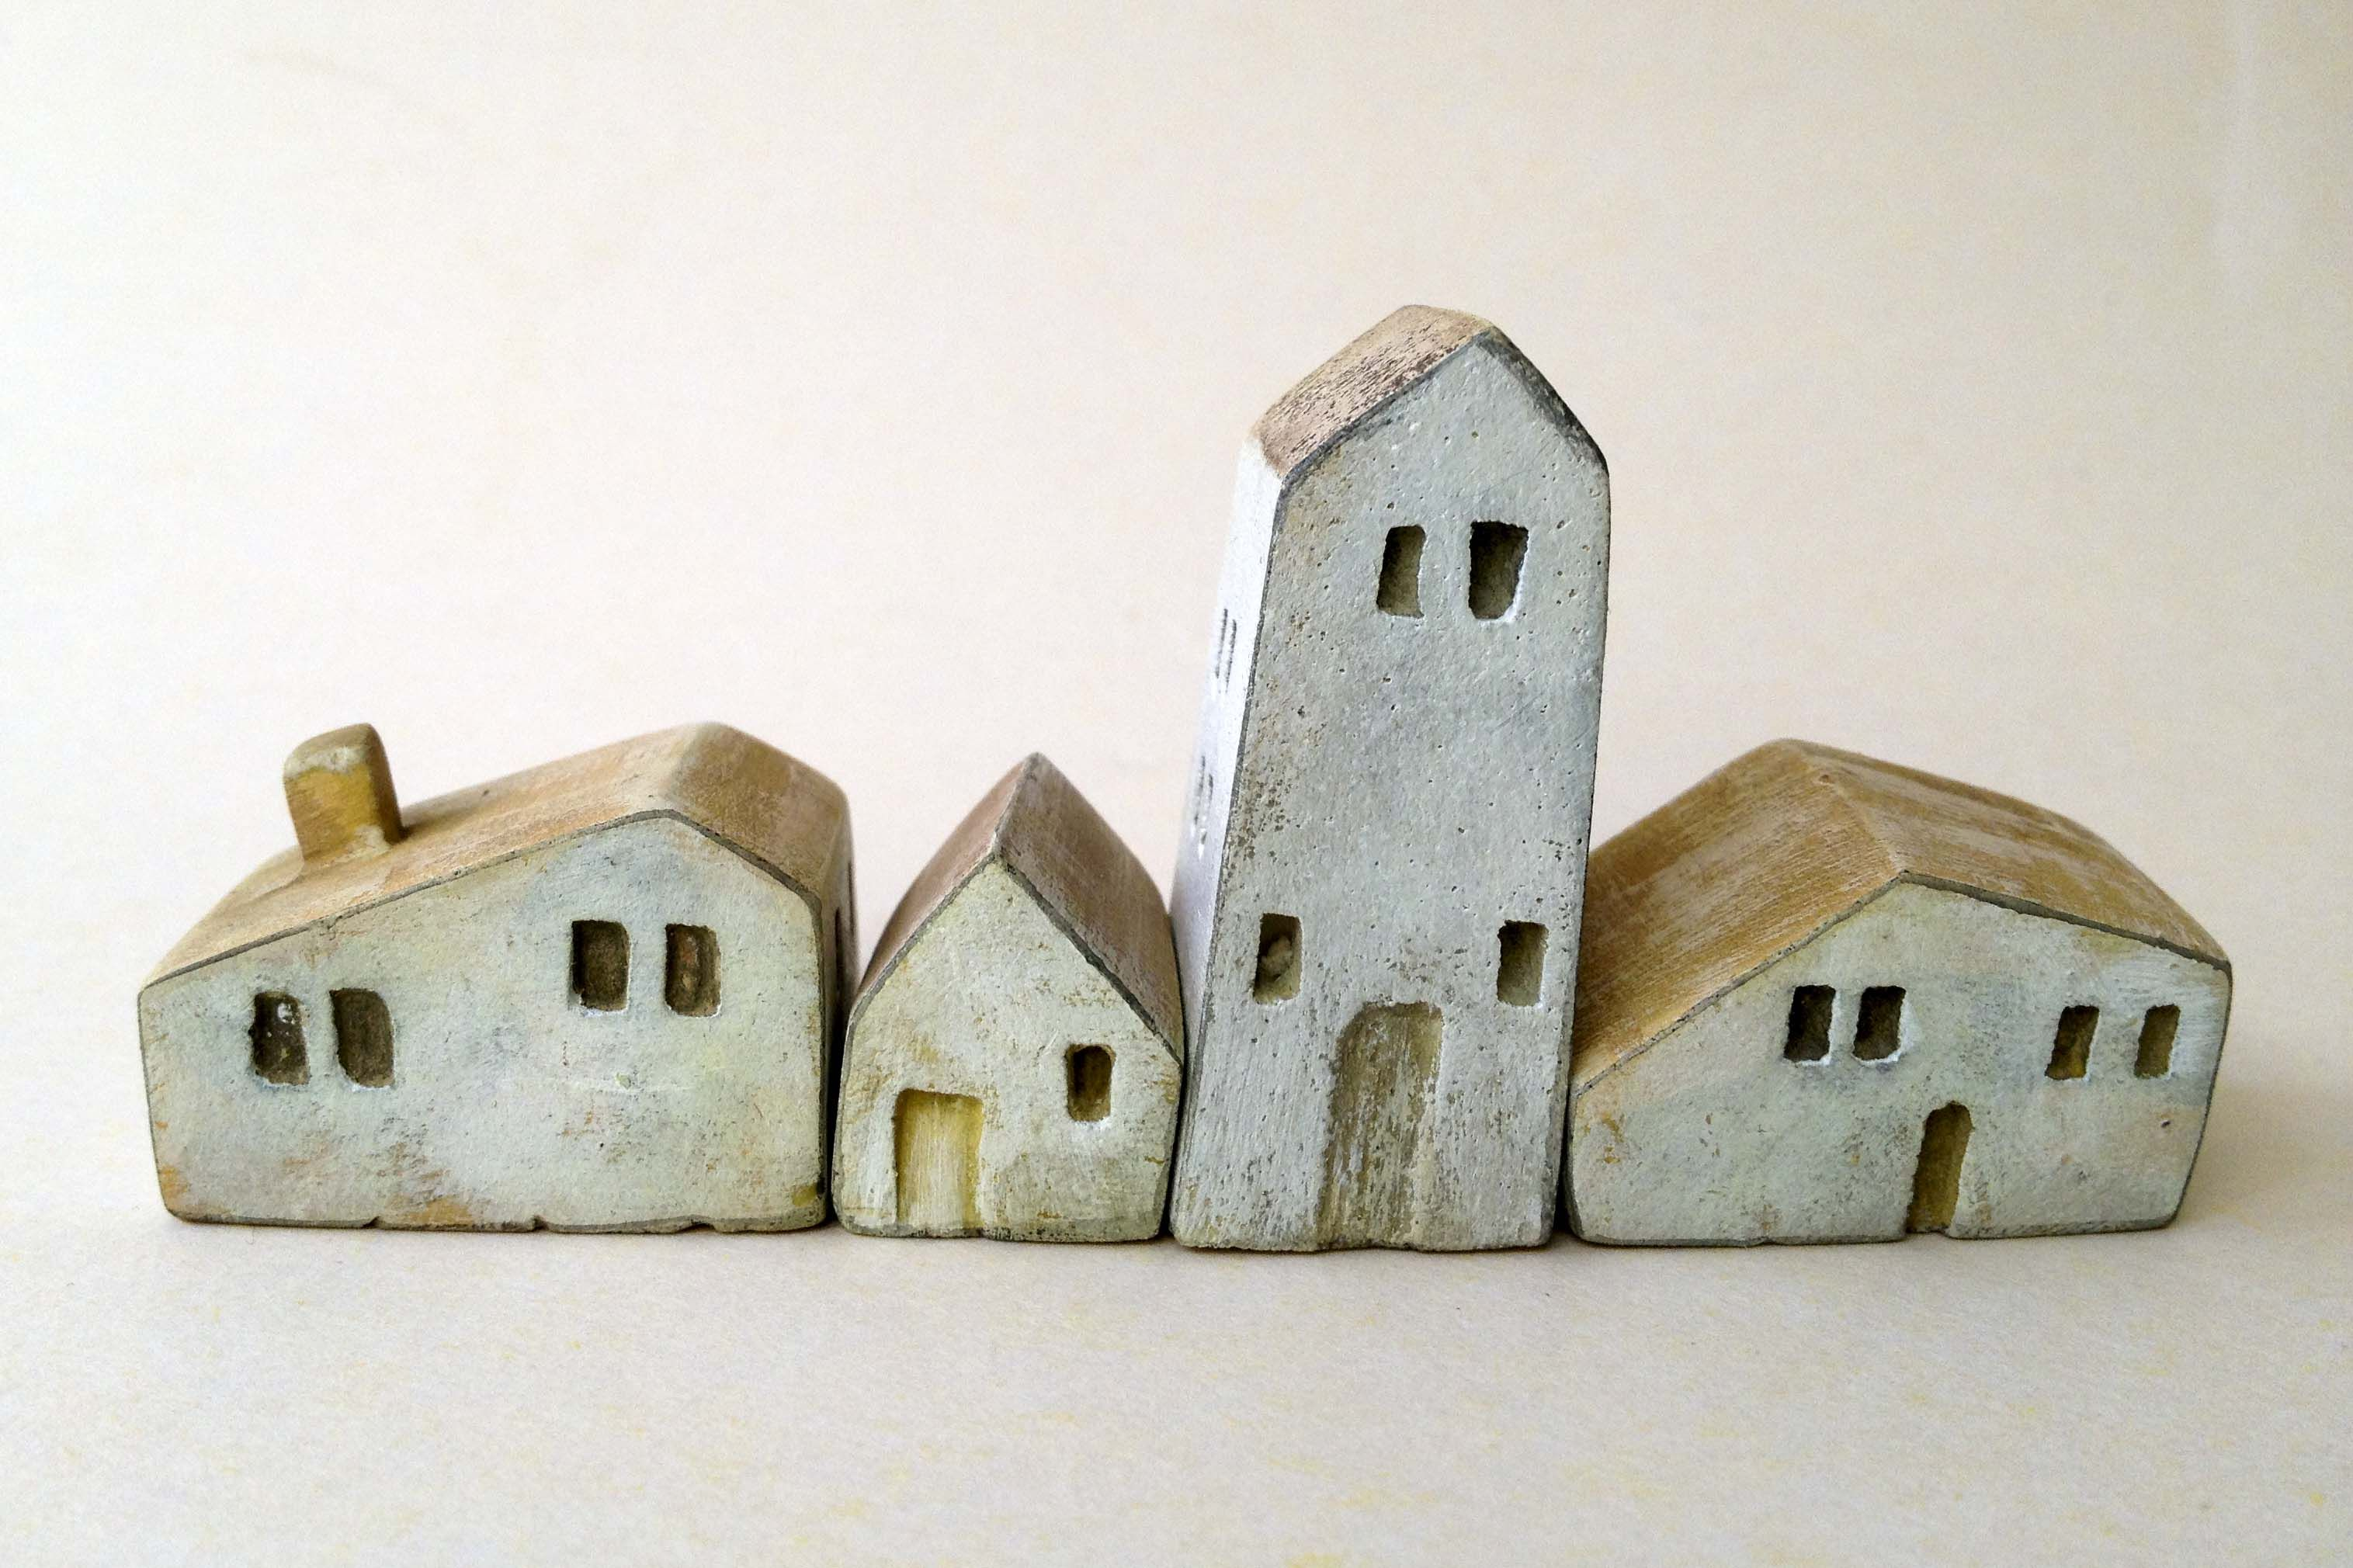 Ceramic christmas houses to paint - Miniature Ceramic And Wooden Houses Home Decor Handmade Unique Gift Christmas Gift